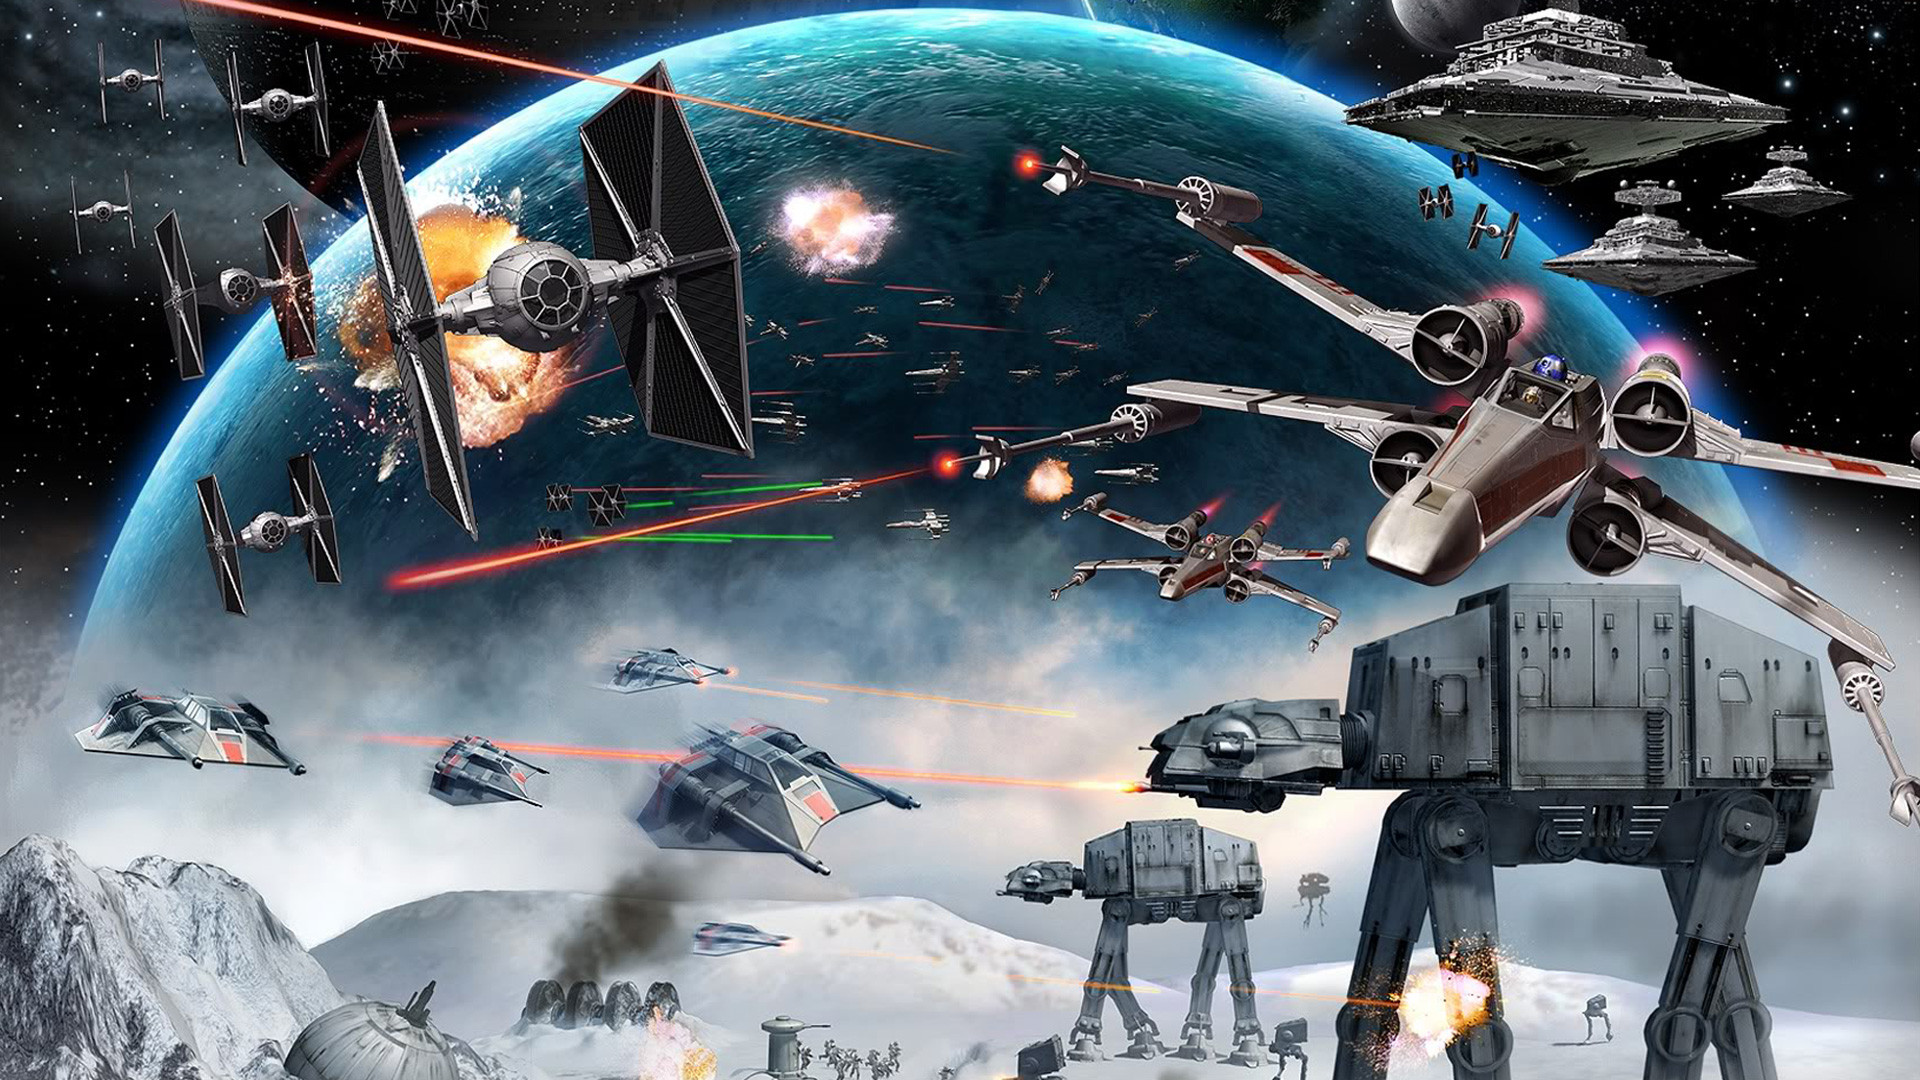 1920x1080 Star Wars Wallpaper High Definition For High Resolution Star Wars Background 1920x1080 Download Hd Wallpaper Wallpapertip